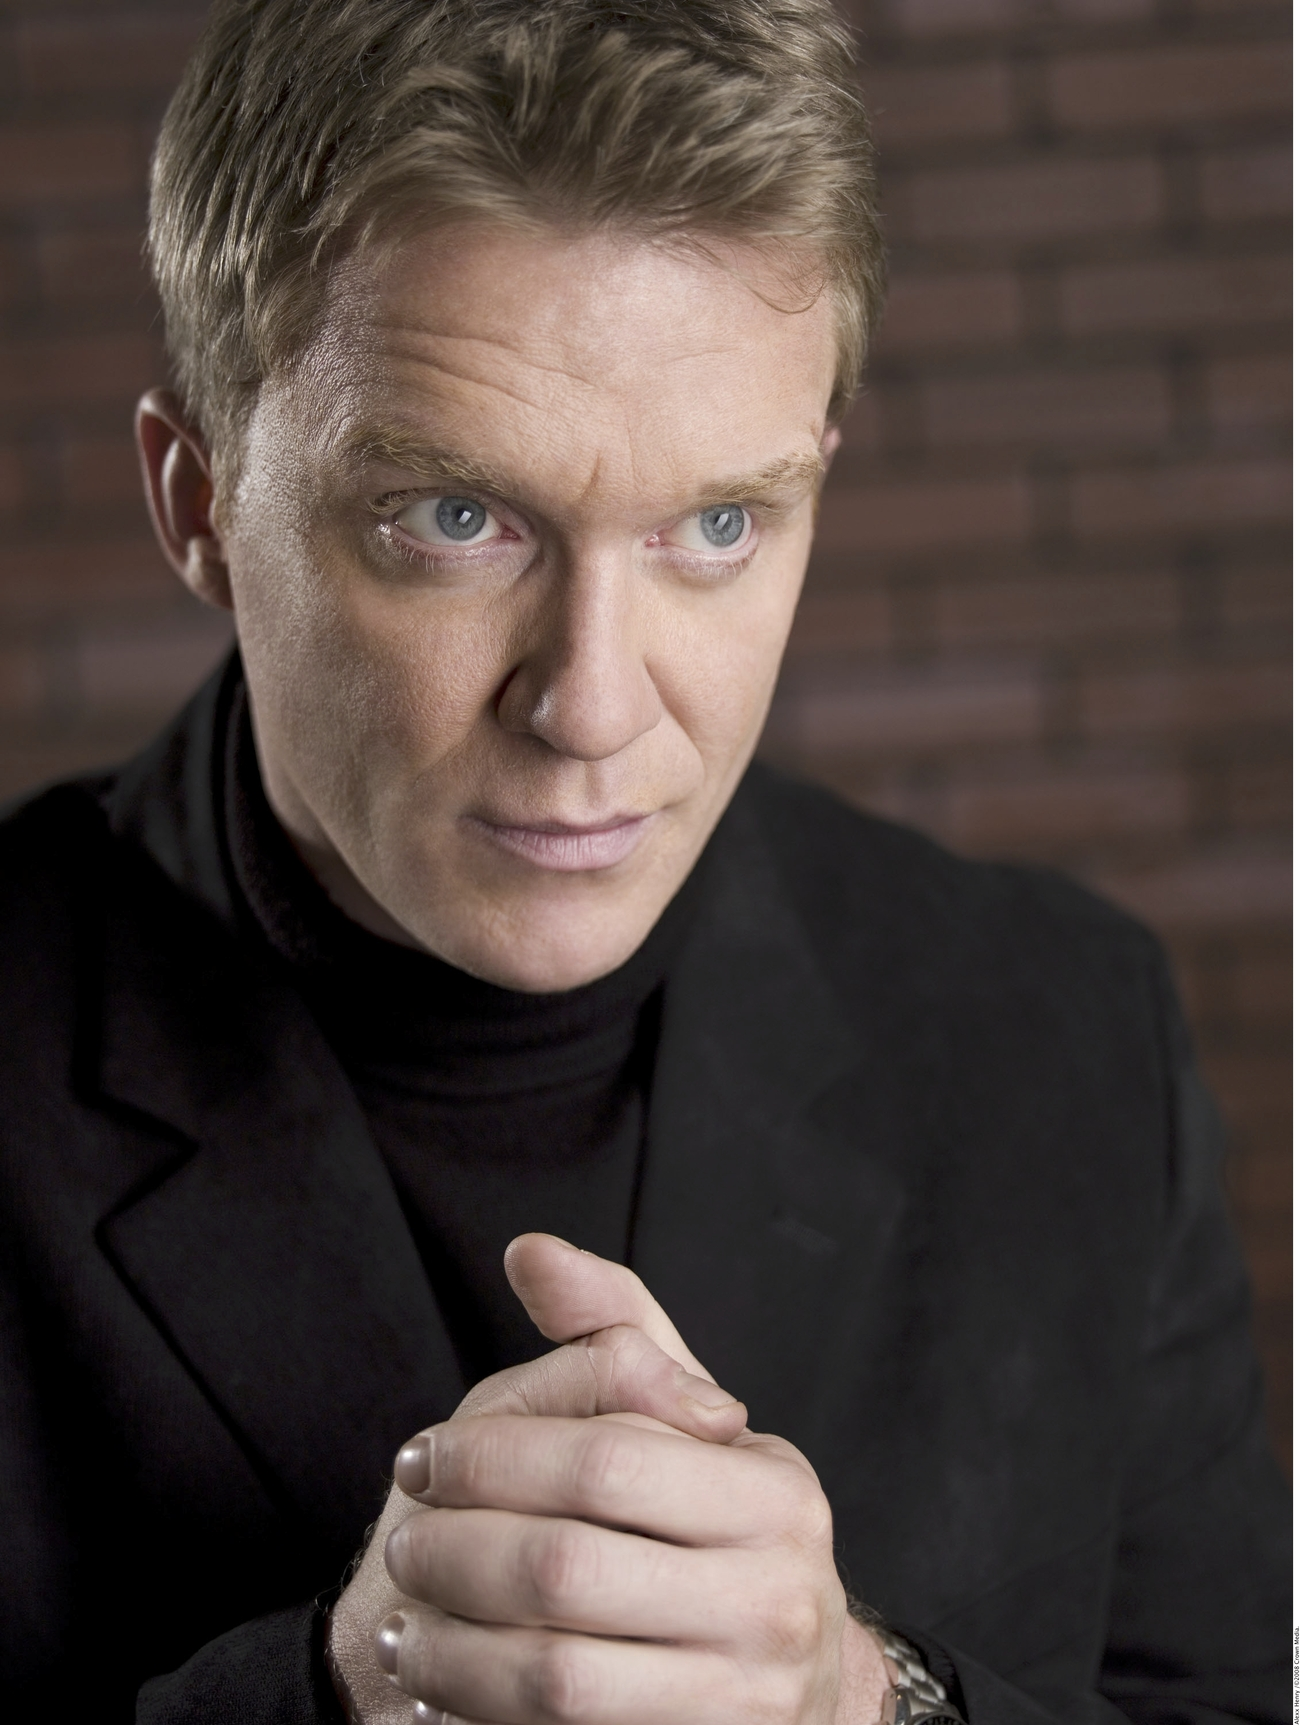 Anthony Michael Hall younger photo three at tvguide.com